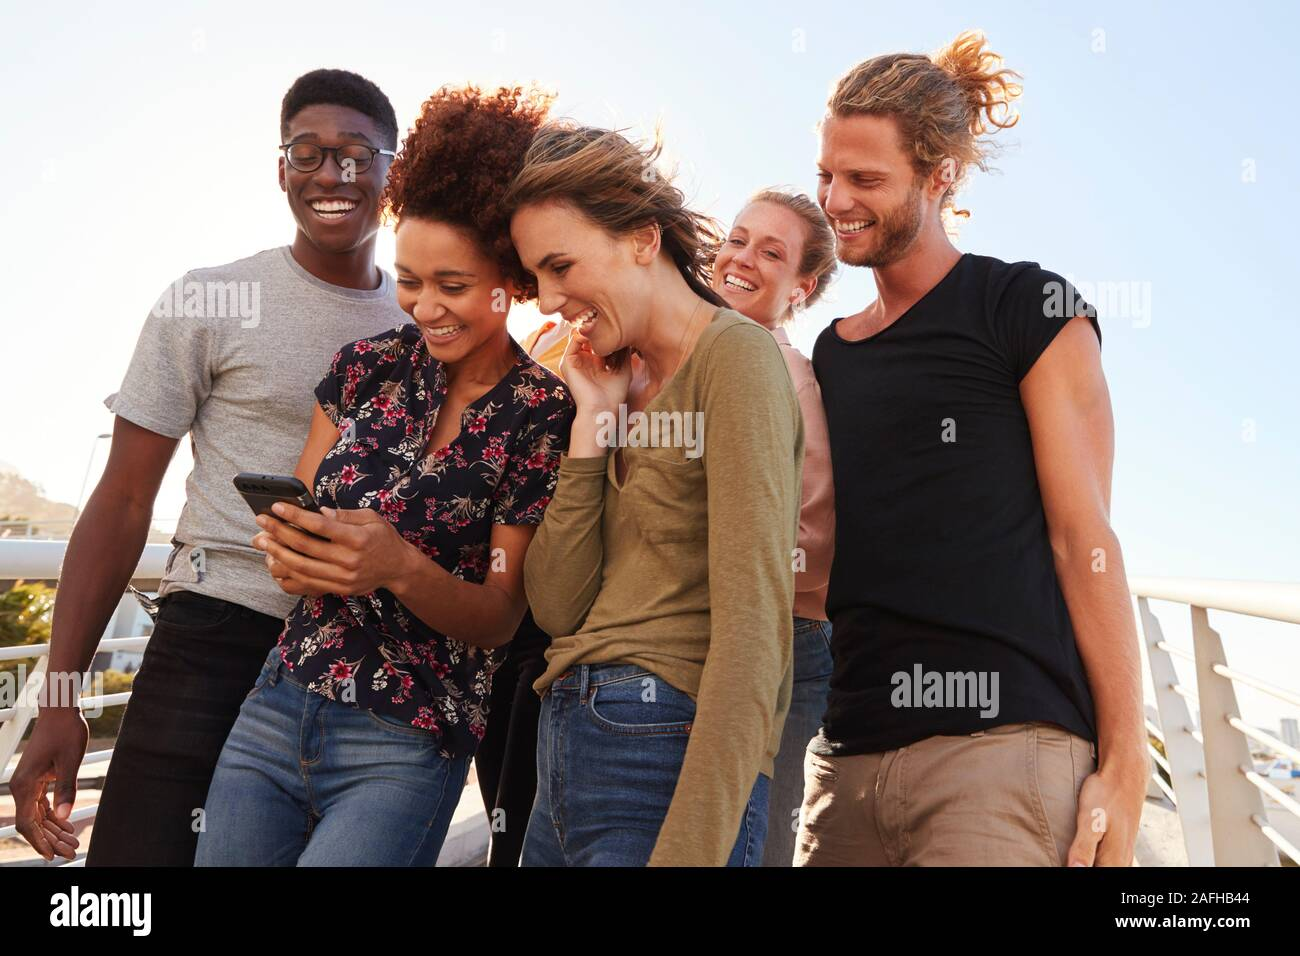 Smiling Young Friends Looking At Selfie On Outdoor Footbridge Together Stock Photo